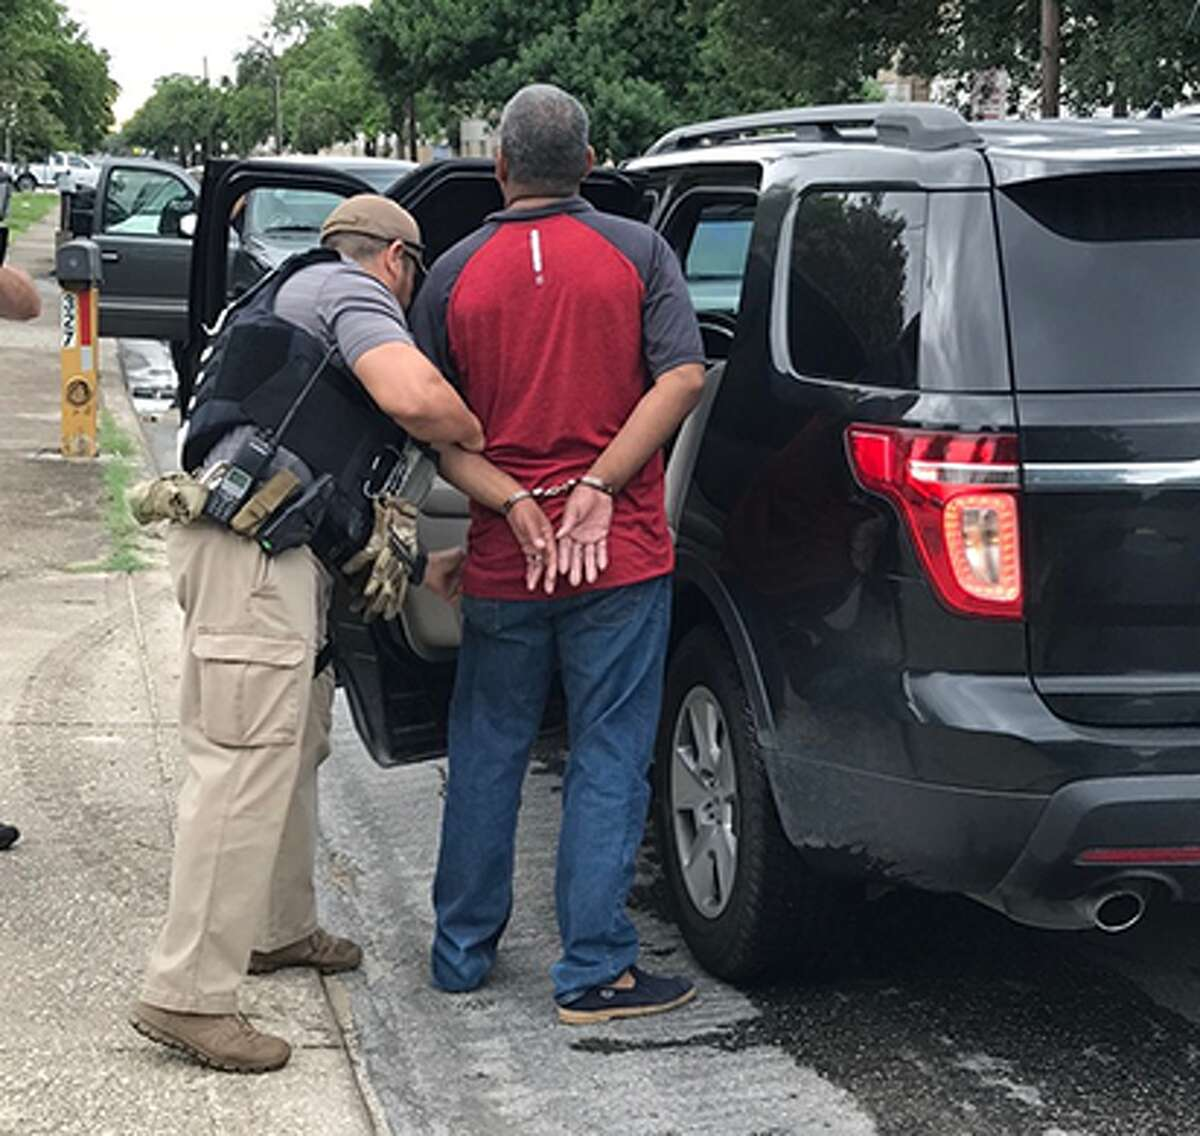 ICE agents arrested 52 undocumented immigrants in a four-day operation that spanned across South and Central Texas.